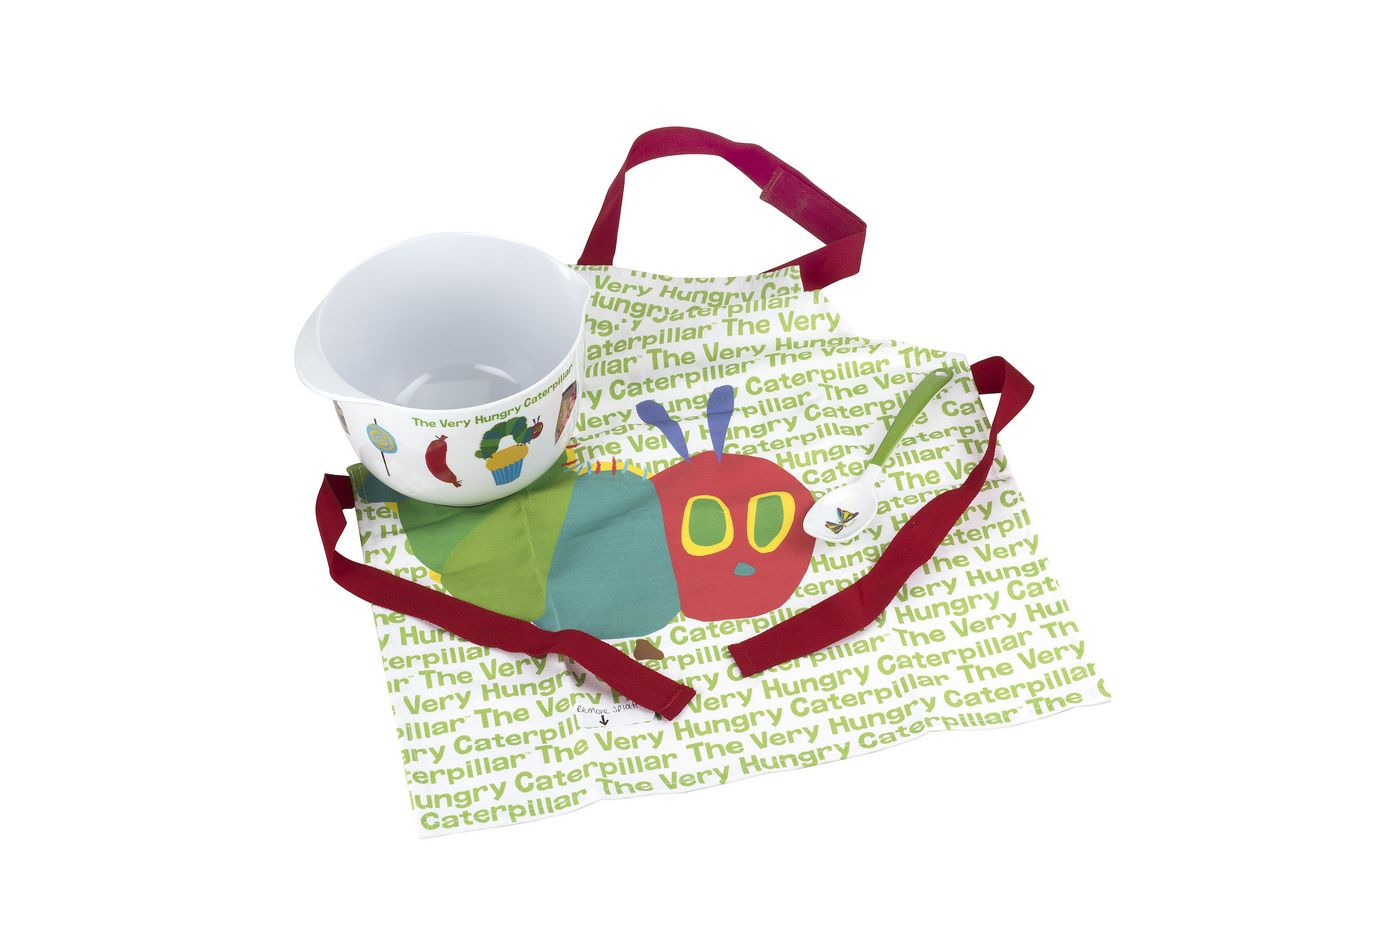 Portmeirion The Very Hungry Caterpillar by Eric Carle Children's Baking Set thumb 1